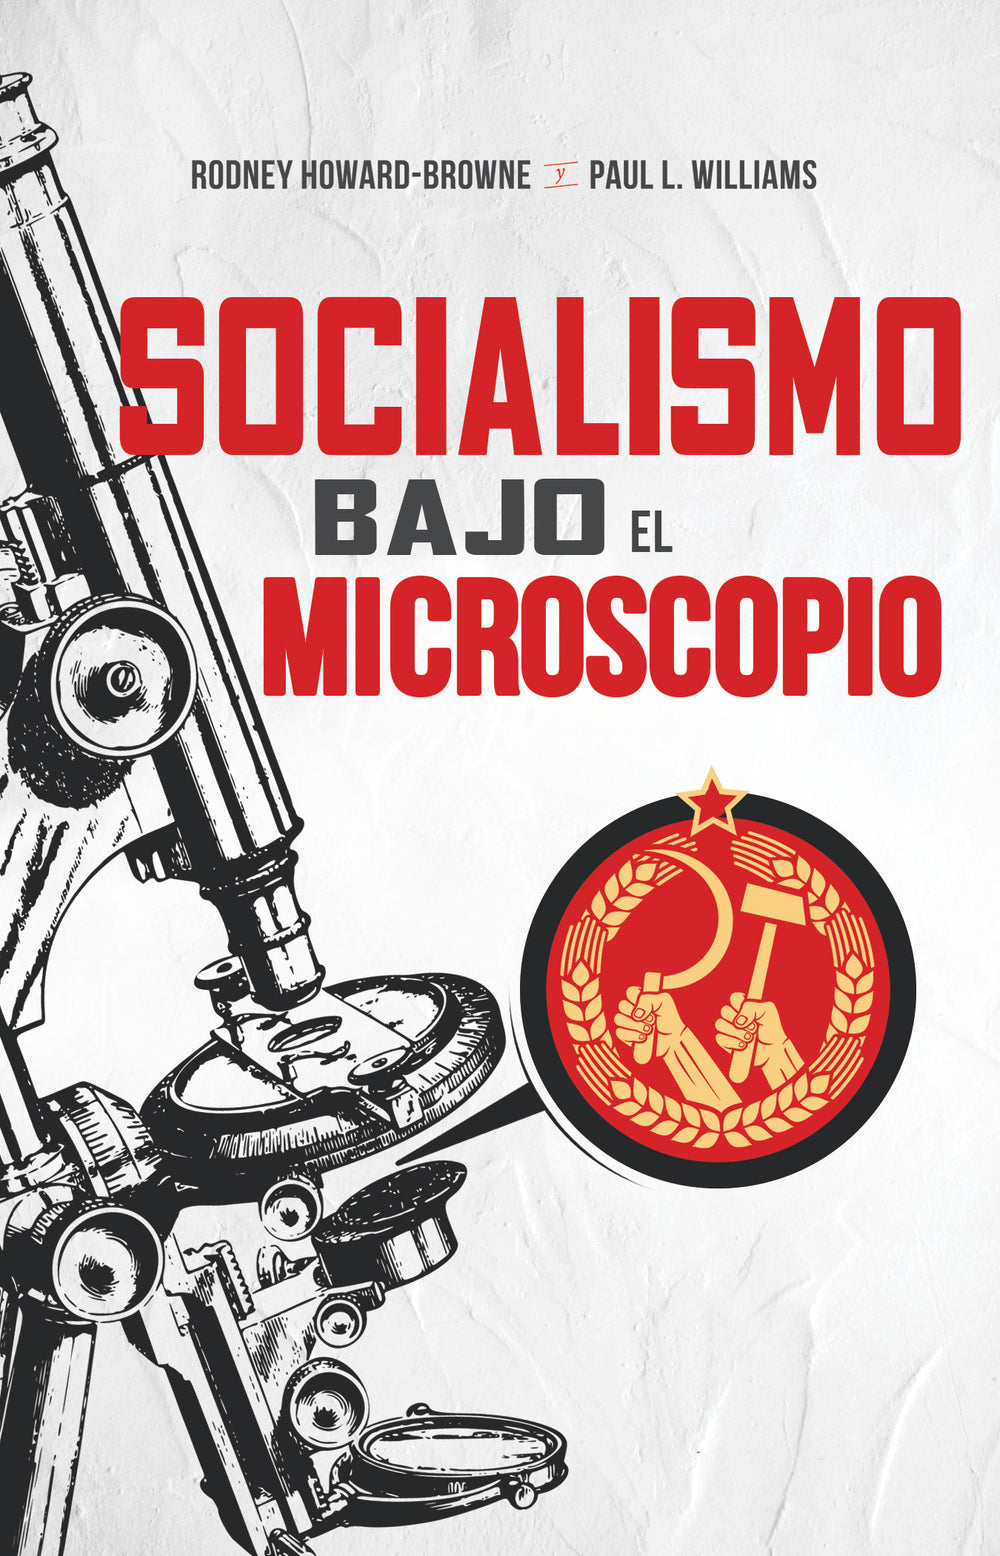 Socialismo Bajo El Microscopio Paperback and Ebook (Socialism Under the Microscope)